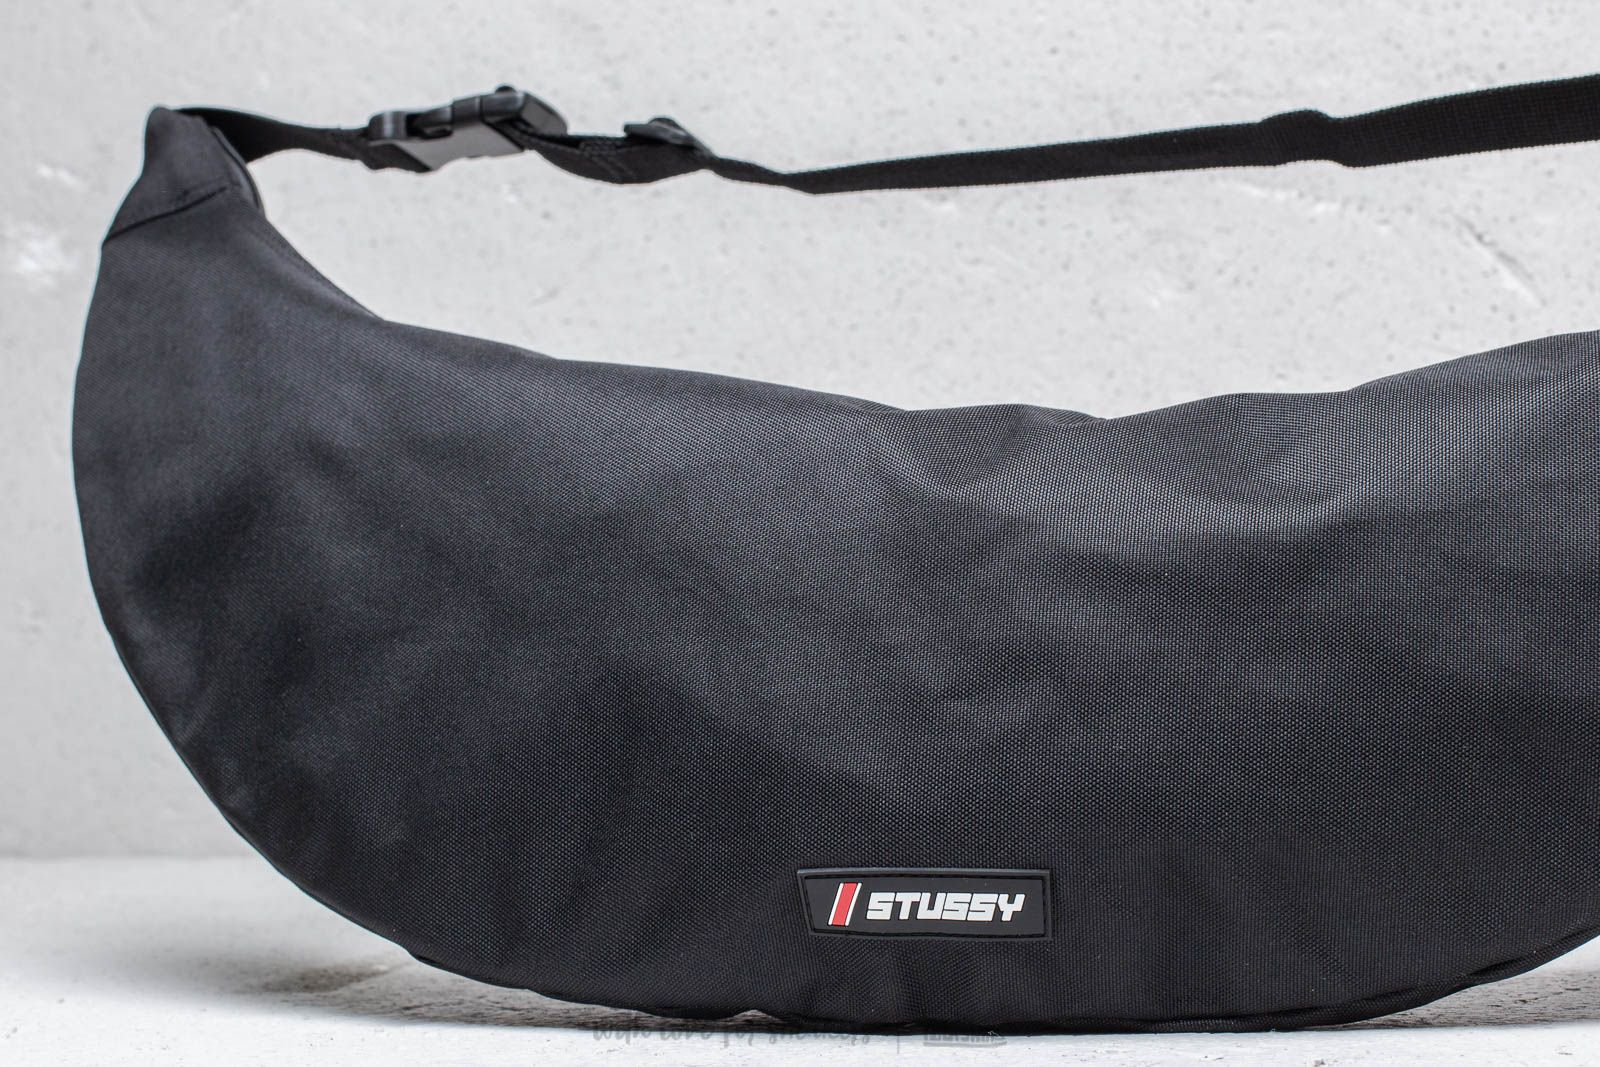 ffc6c0d24f52 Stüssy Maps Sling Bag Black at a great price 48 € buy at Footshop